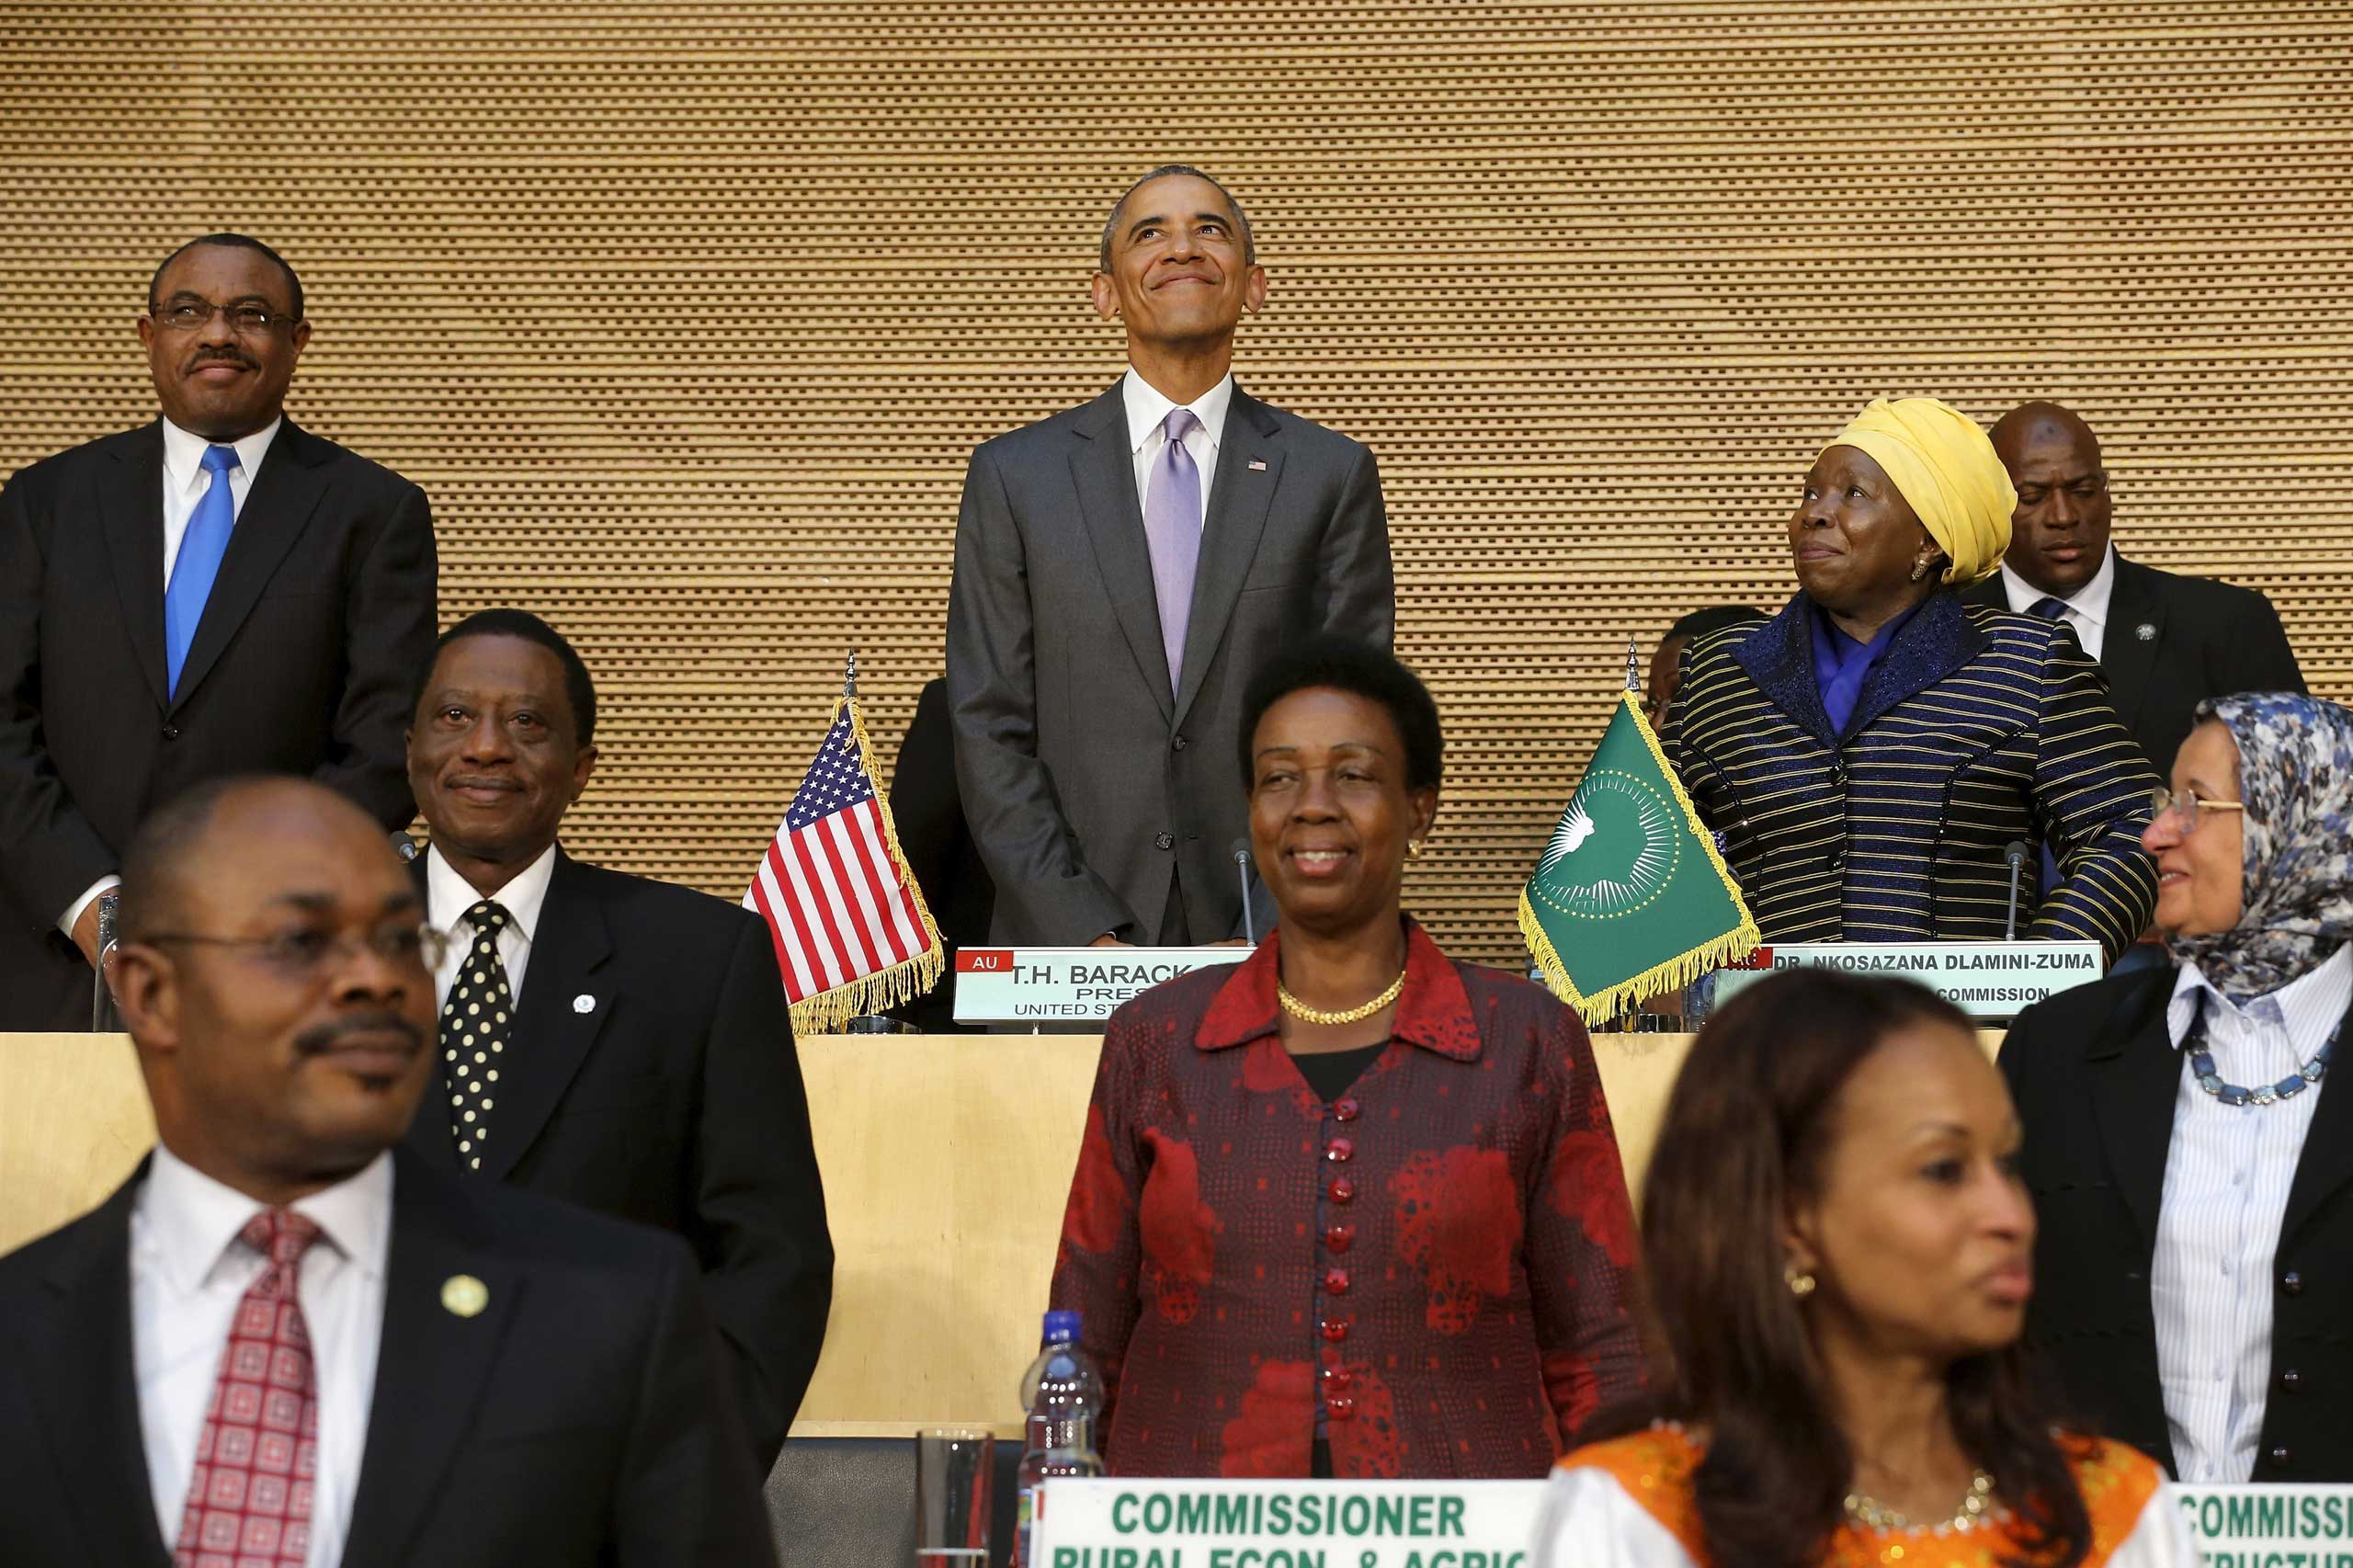 President Barack Obama flanked by Ethiopia's Prime Minister Hailemariam Desalegn (top left) and African Union Chairperson Nkosazana Dlamini-Zuma (top right), arrives to deliver remarks at the African Union in Addis Ababa on July 28, 2015.